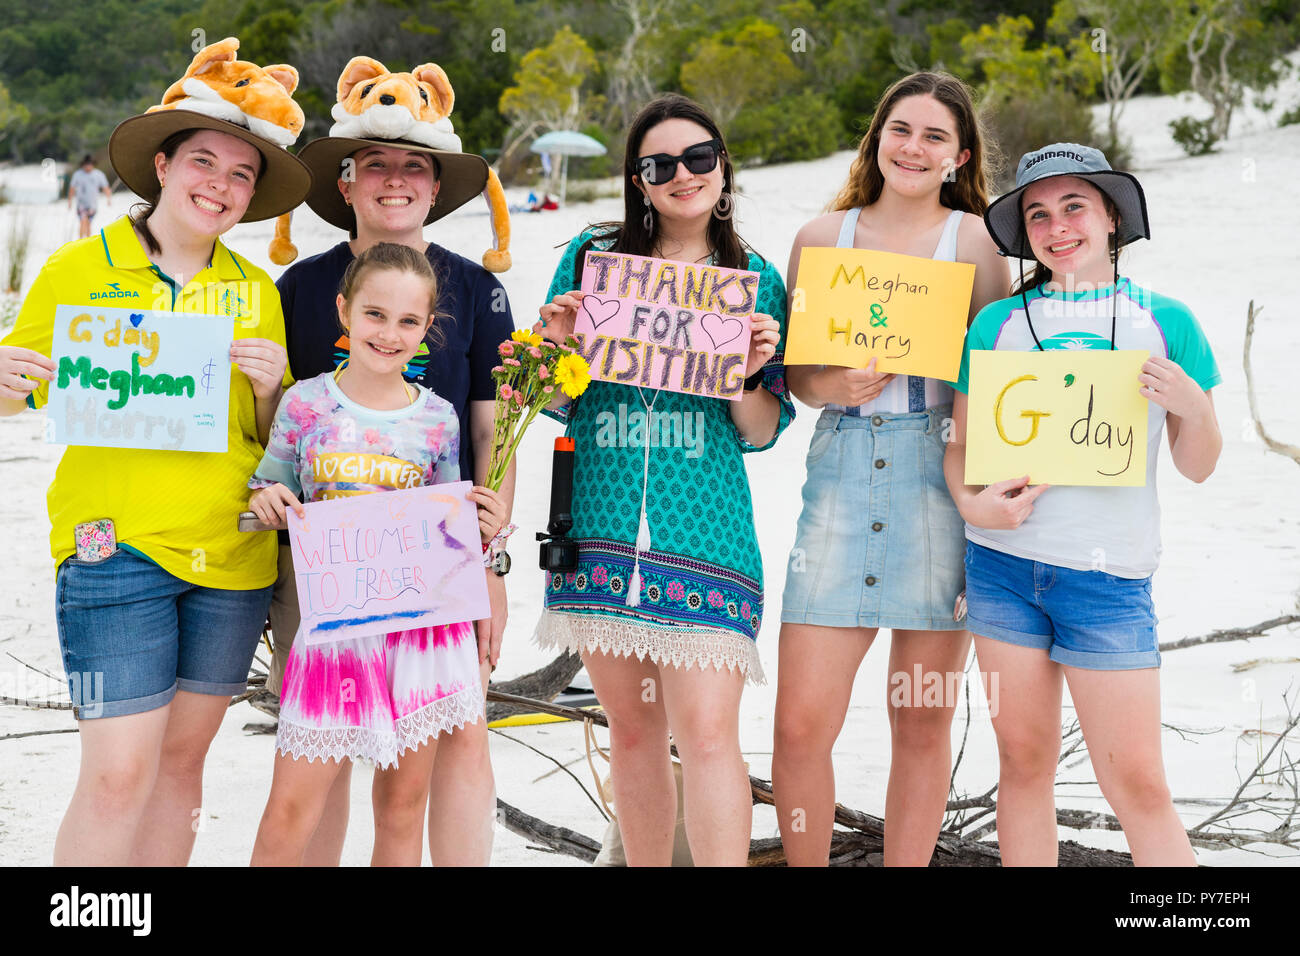 Fraser Island, Australia - October 22, 2018: a group of teens with signs to welcome the Royals to Fraser Island Stock Photo